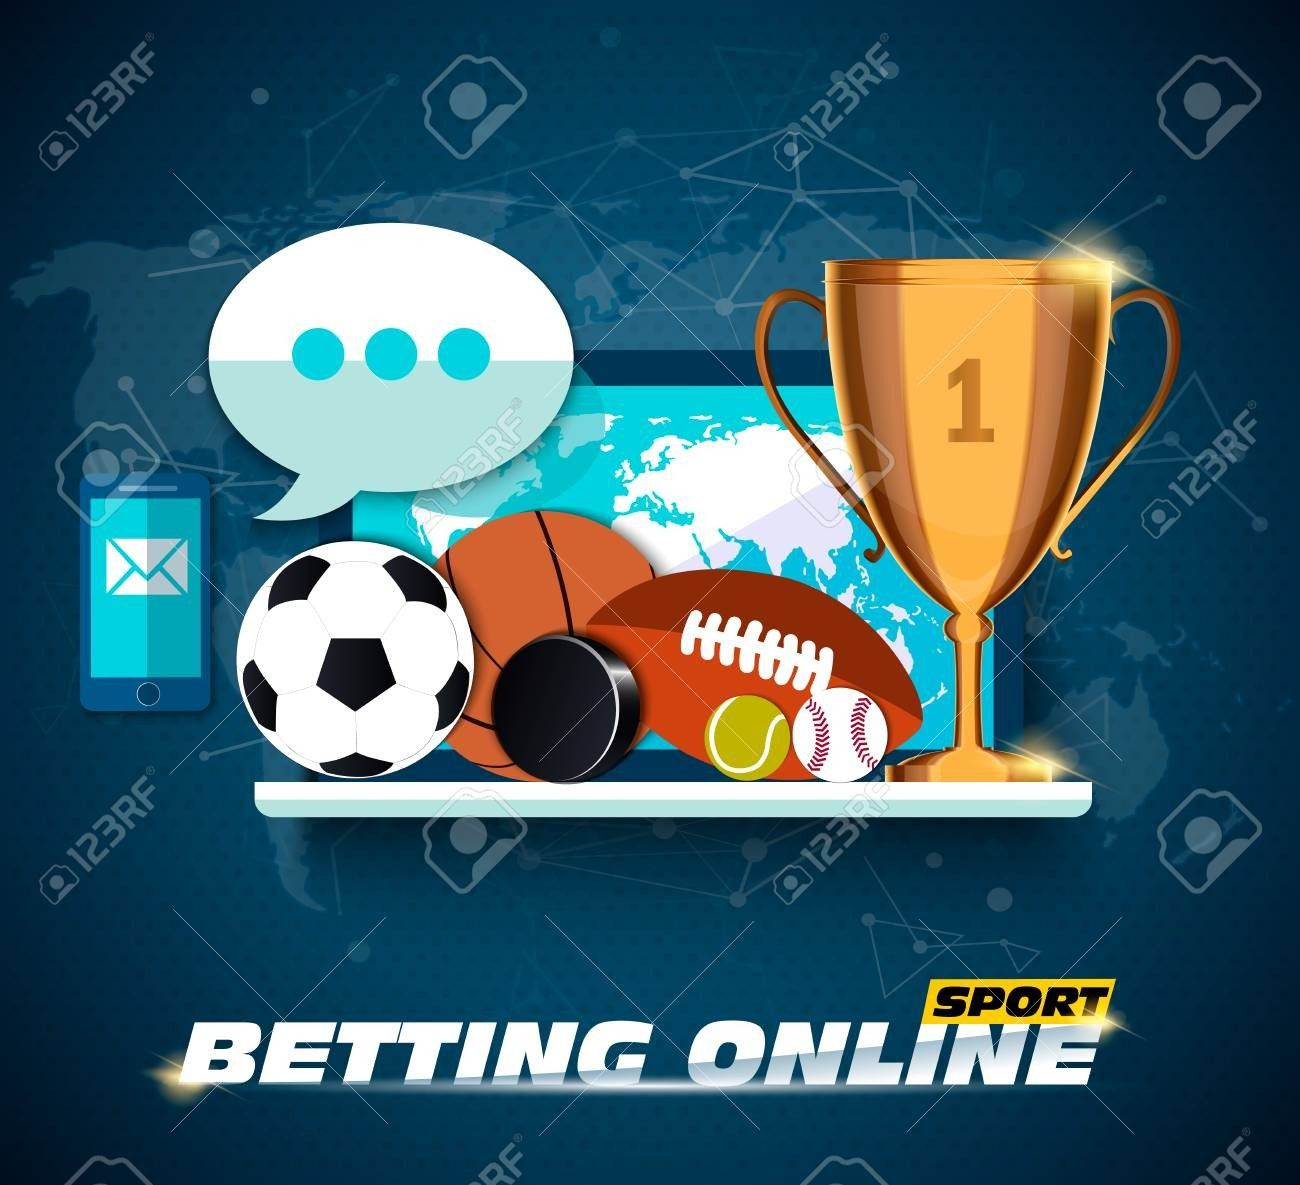 Pin by on online casino Singapore Sports theme